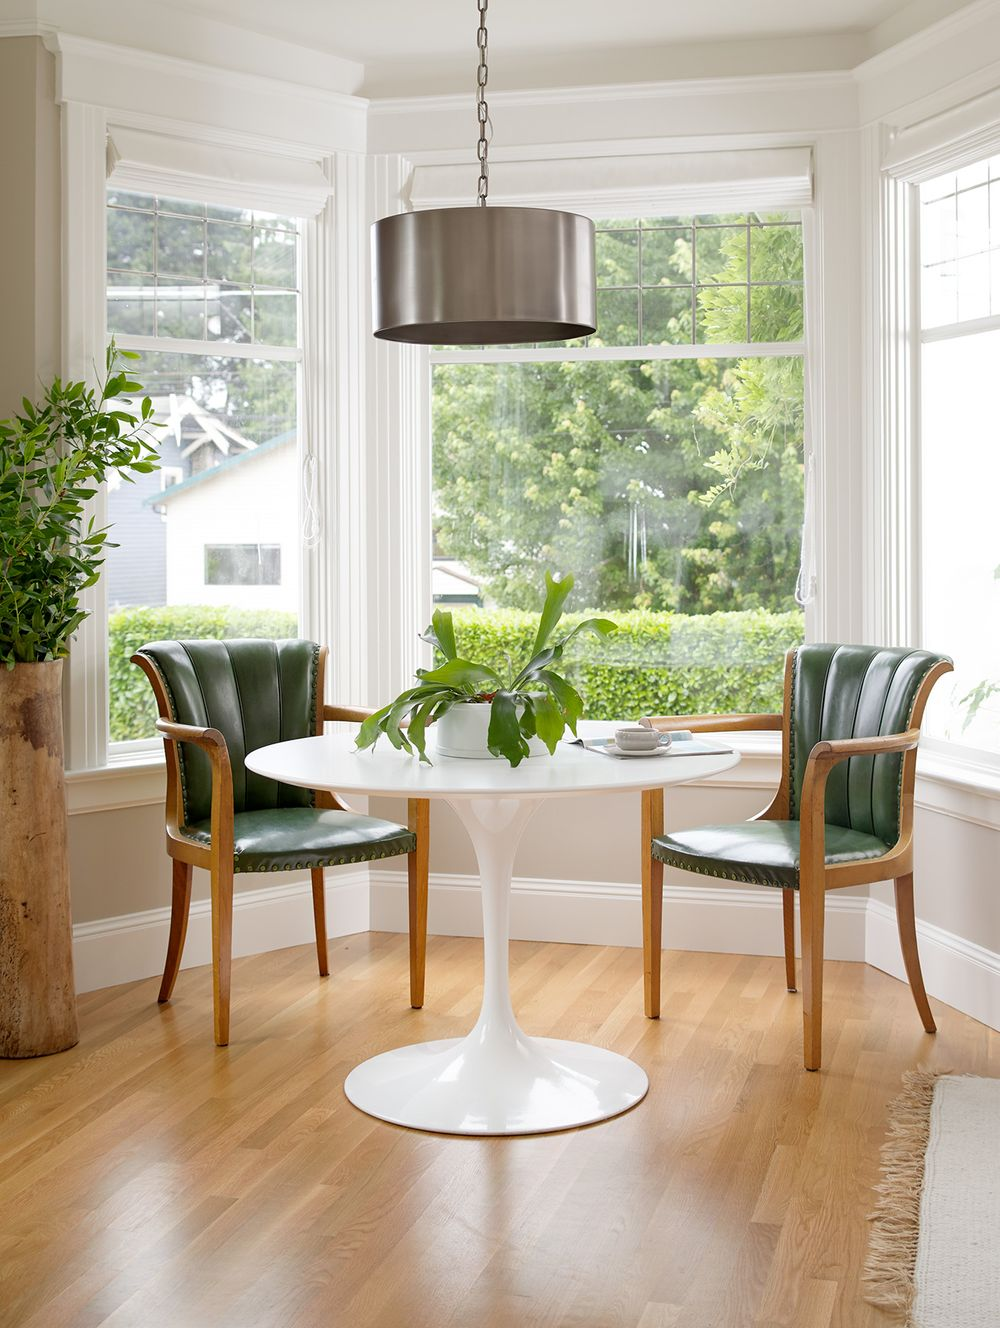 Green modern chairs modern white dining table